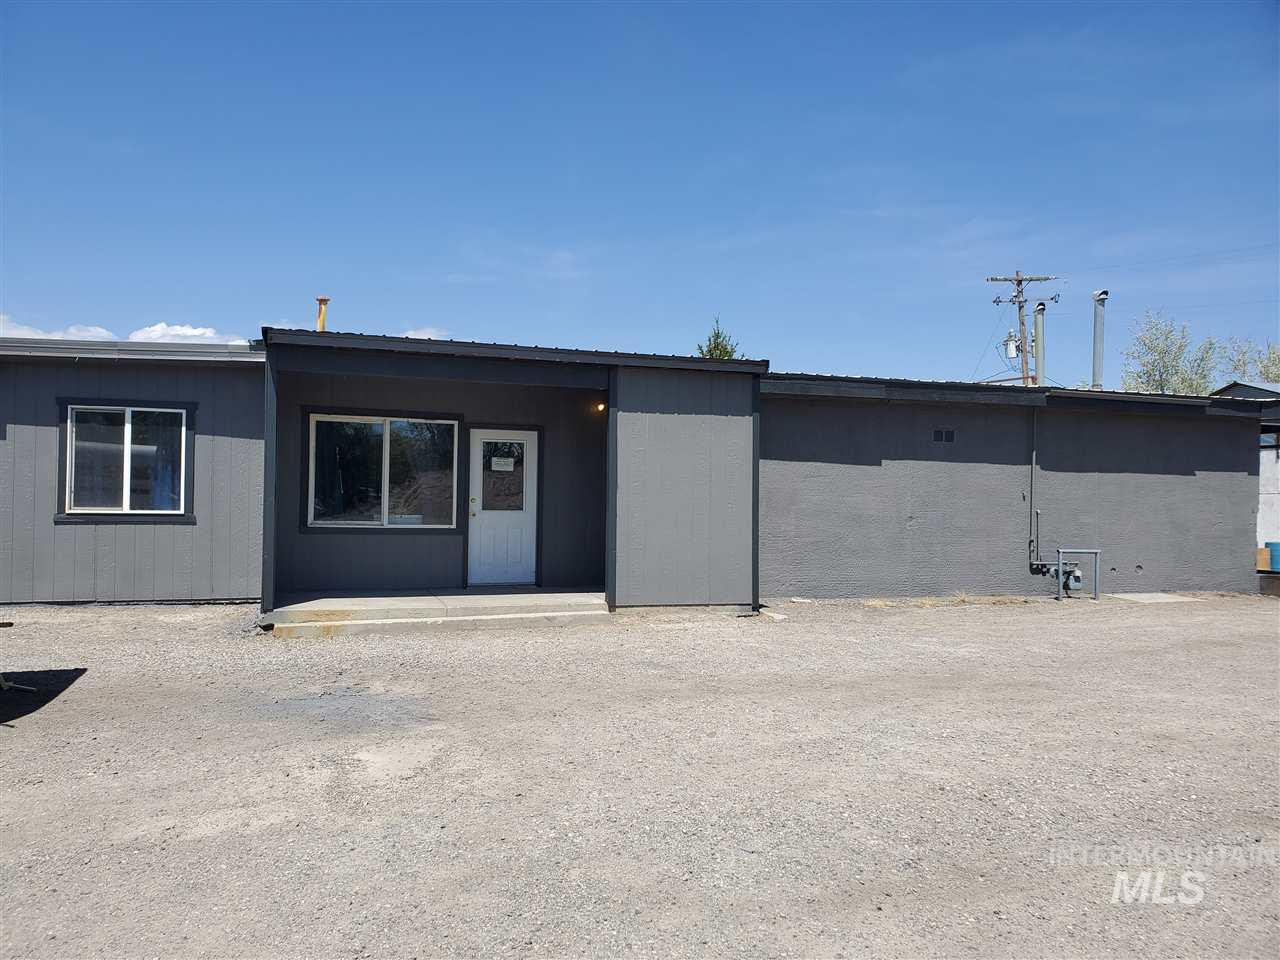 150 Colorado Street, Gooding, Idaho 83330, Business/Commercial For Sale, Price $282,000, 98728074